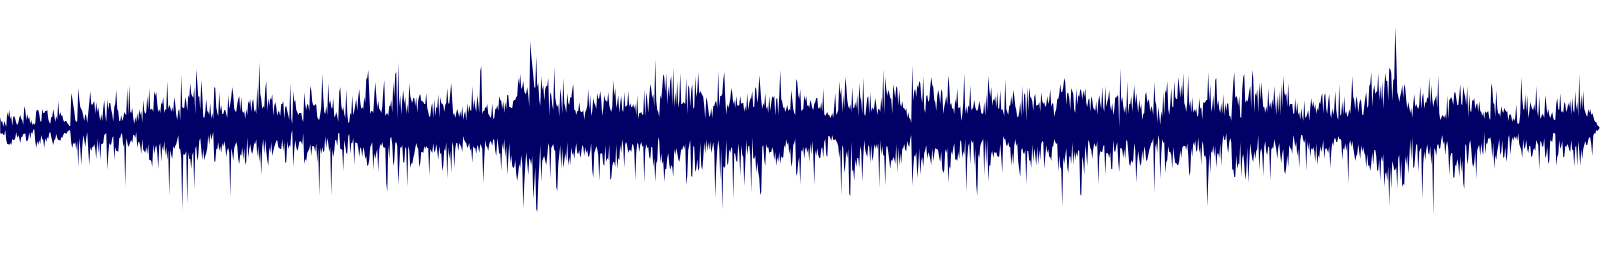 waveform of track #136130